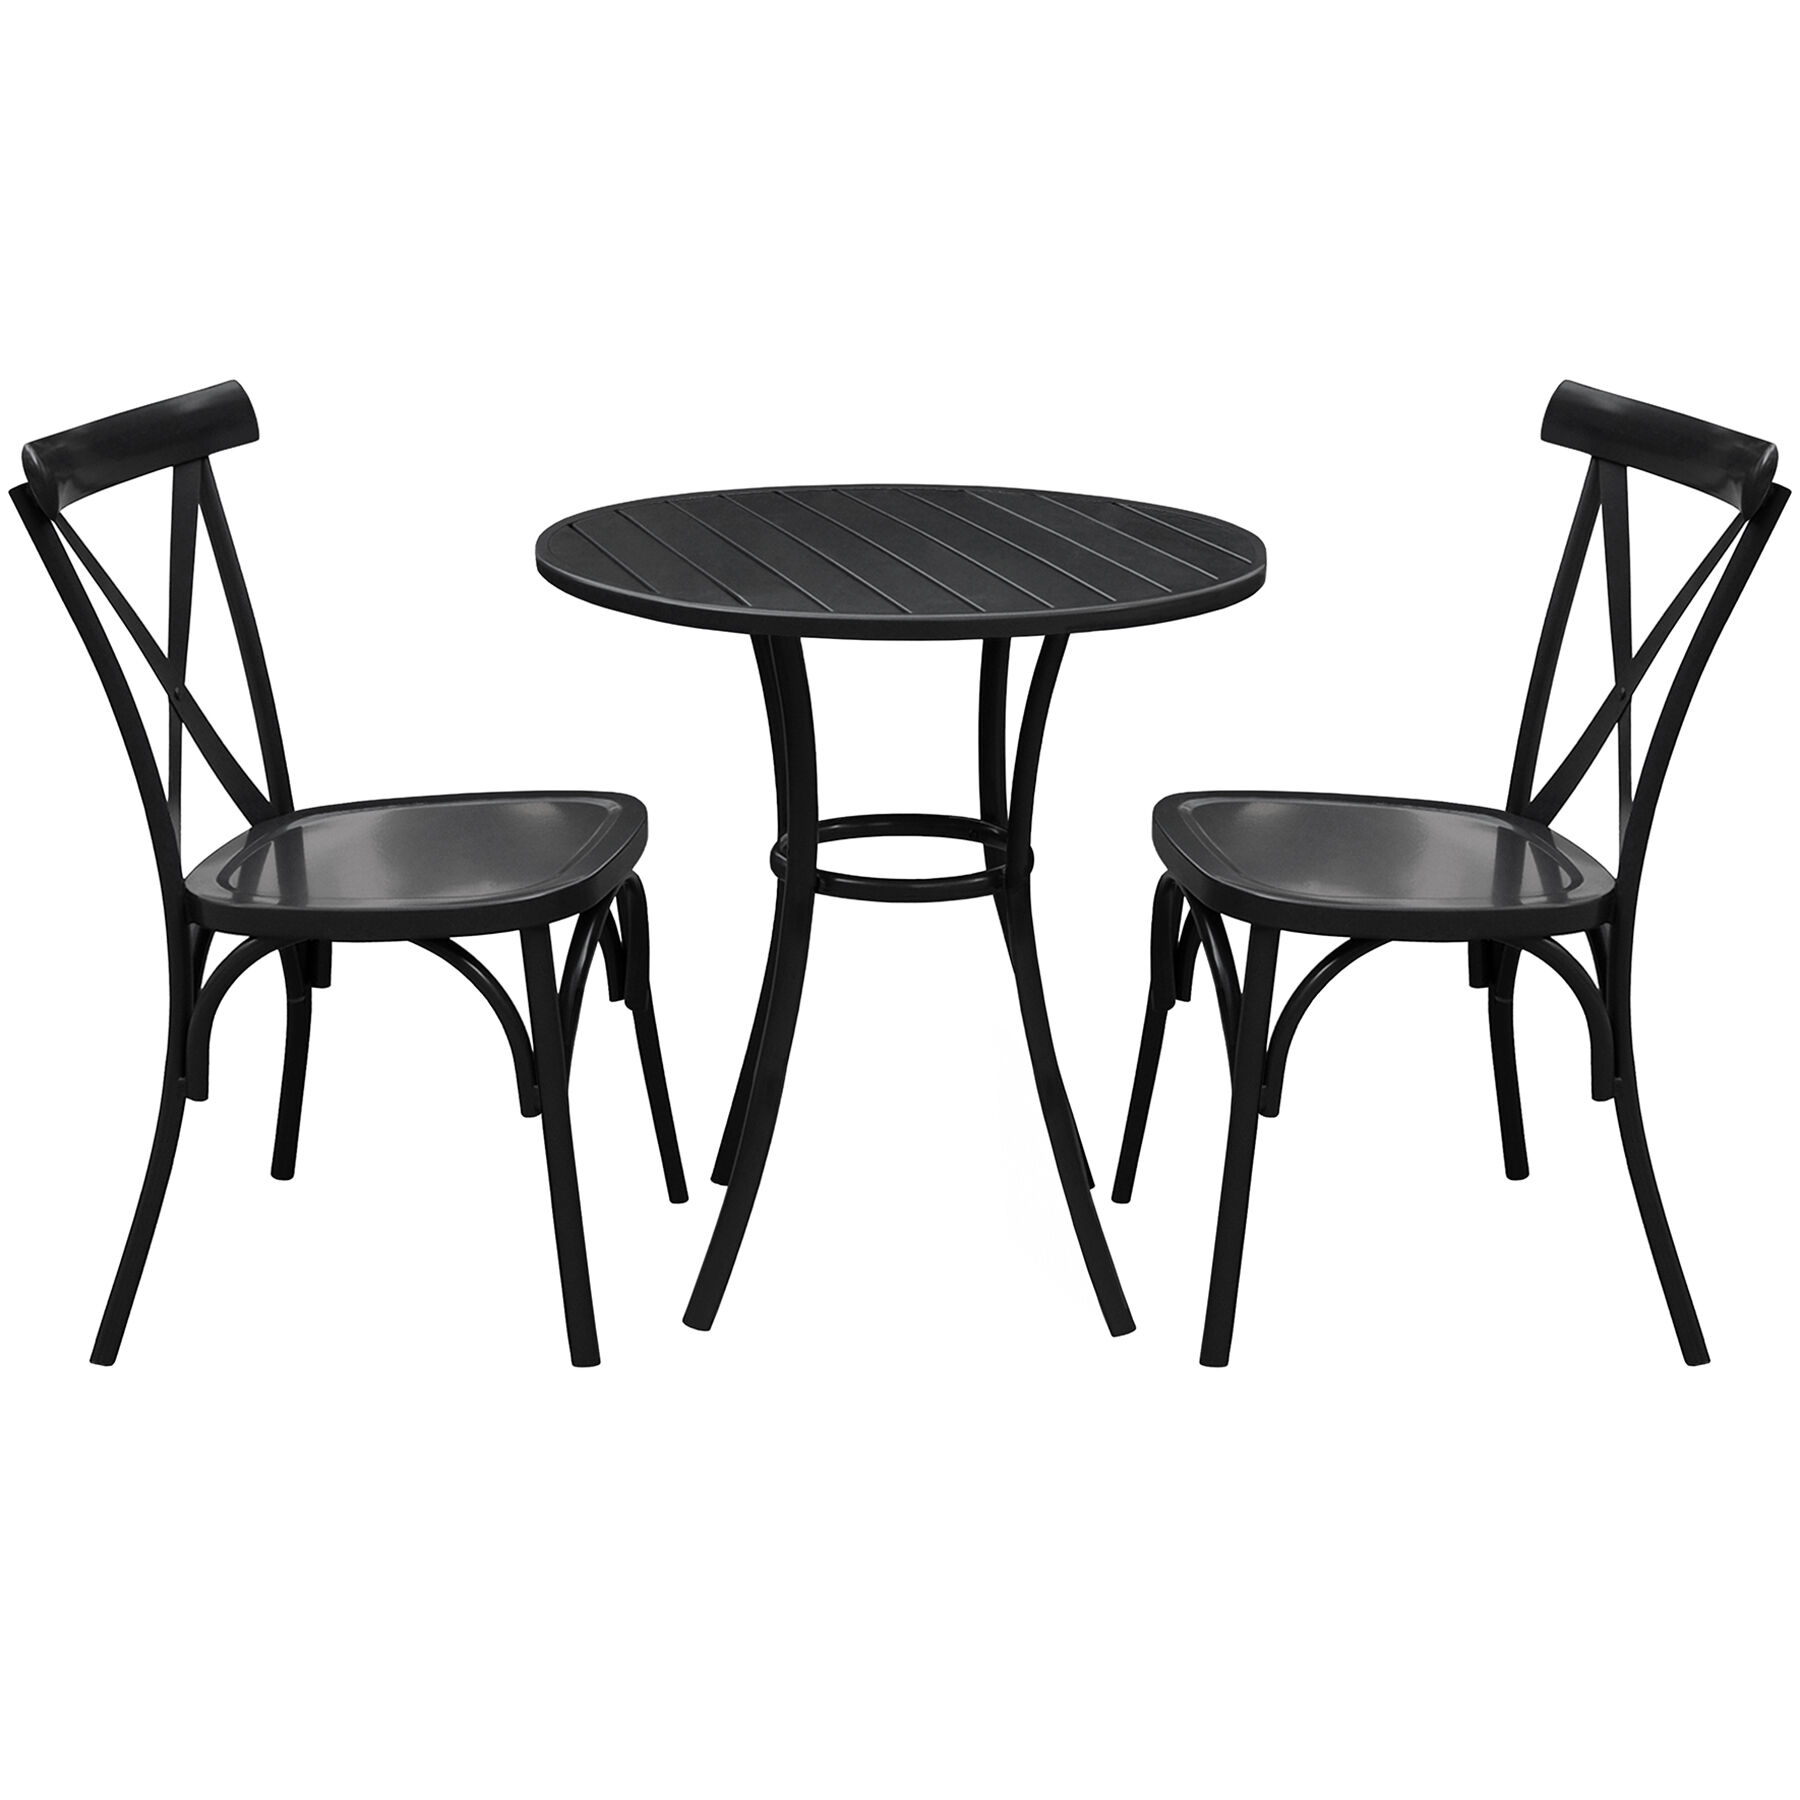 3 piece outdoor table and chairs cooper co beach patio garden clearance at home colmar bistro set